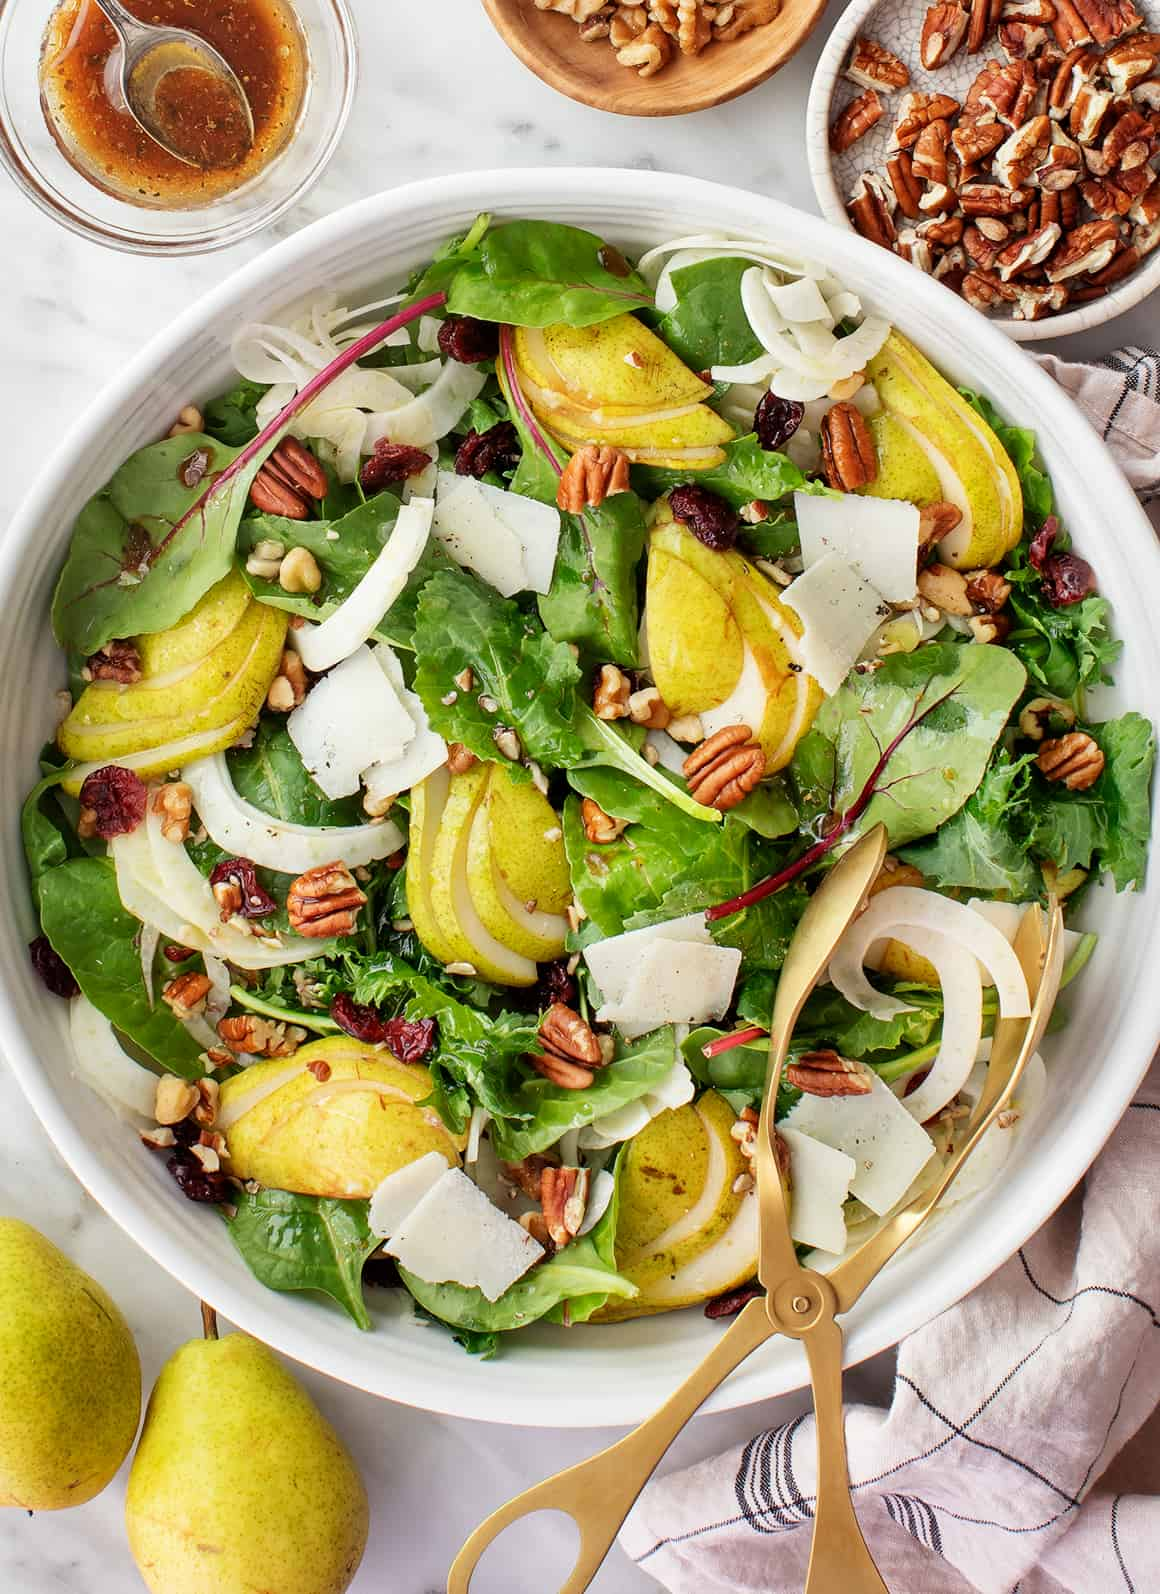 Pear Salad with Balsamic and Walnuts